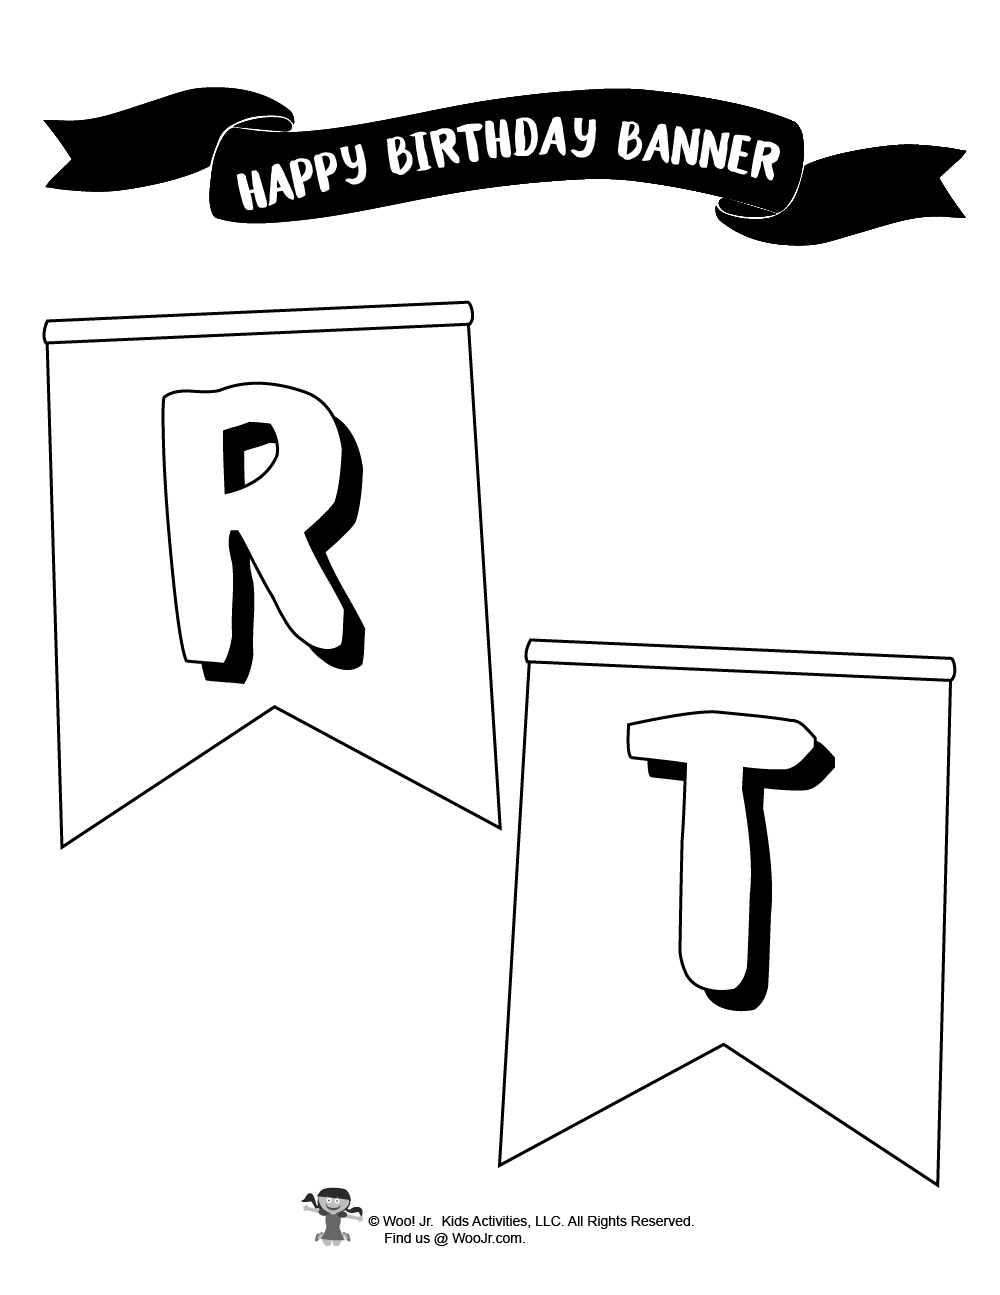 Happy Birthday Party Banner Coloring Pages   Woo Jr. Kids Activities